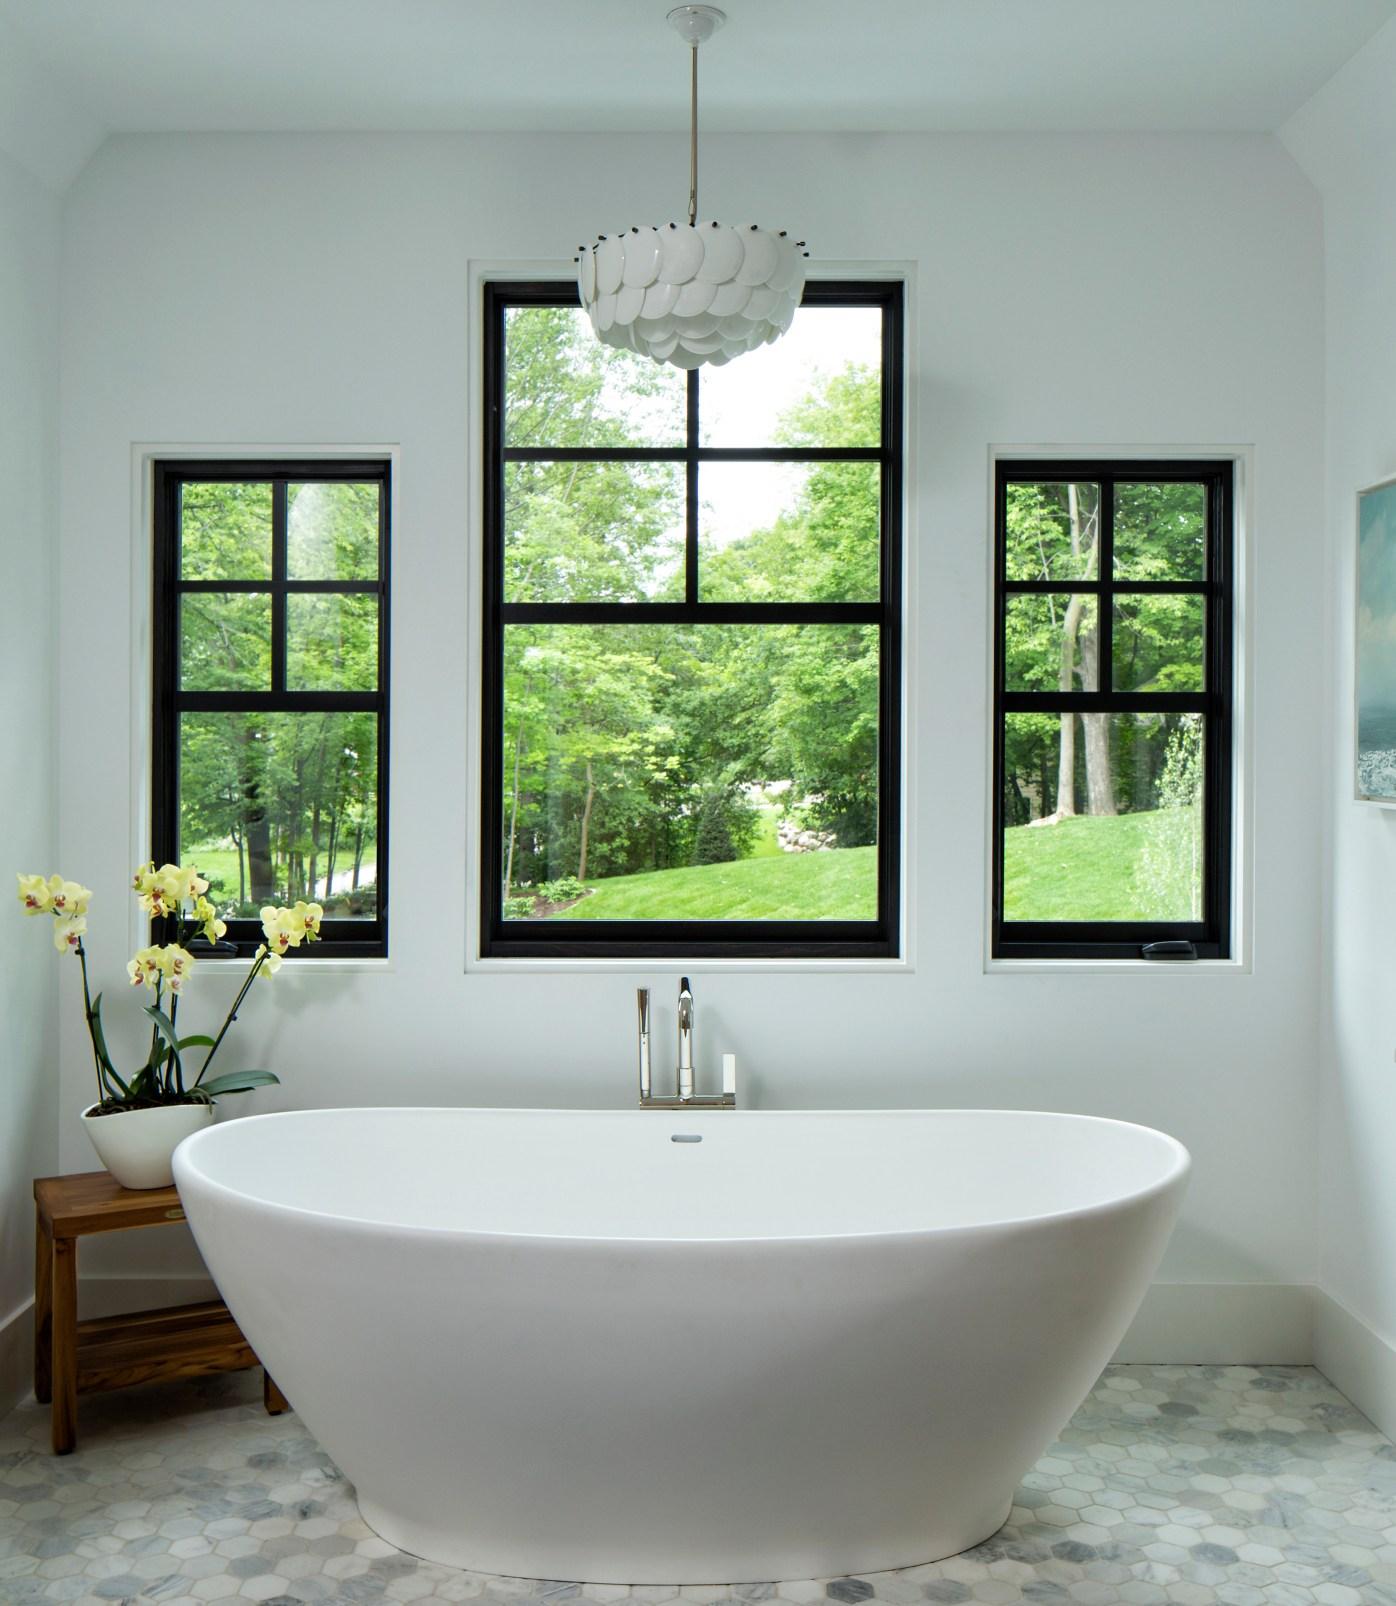 All-white bathroom with dark exterior Marvin windows